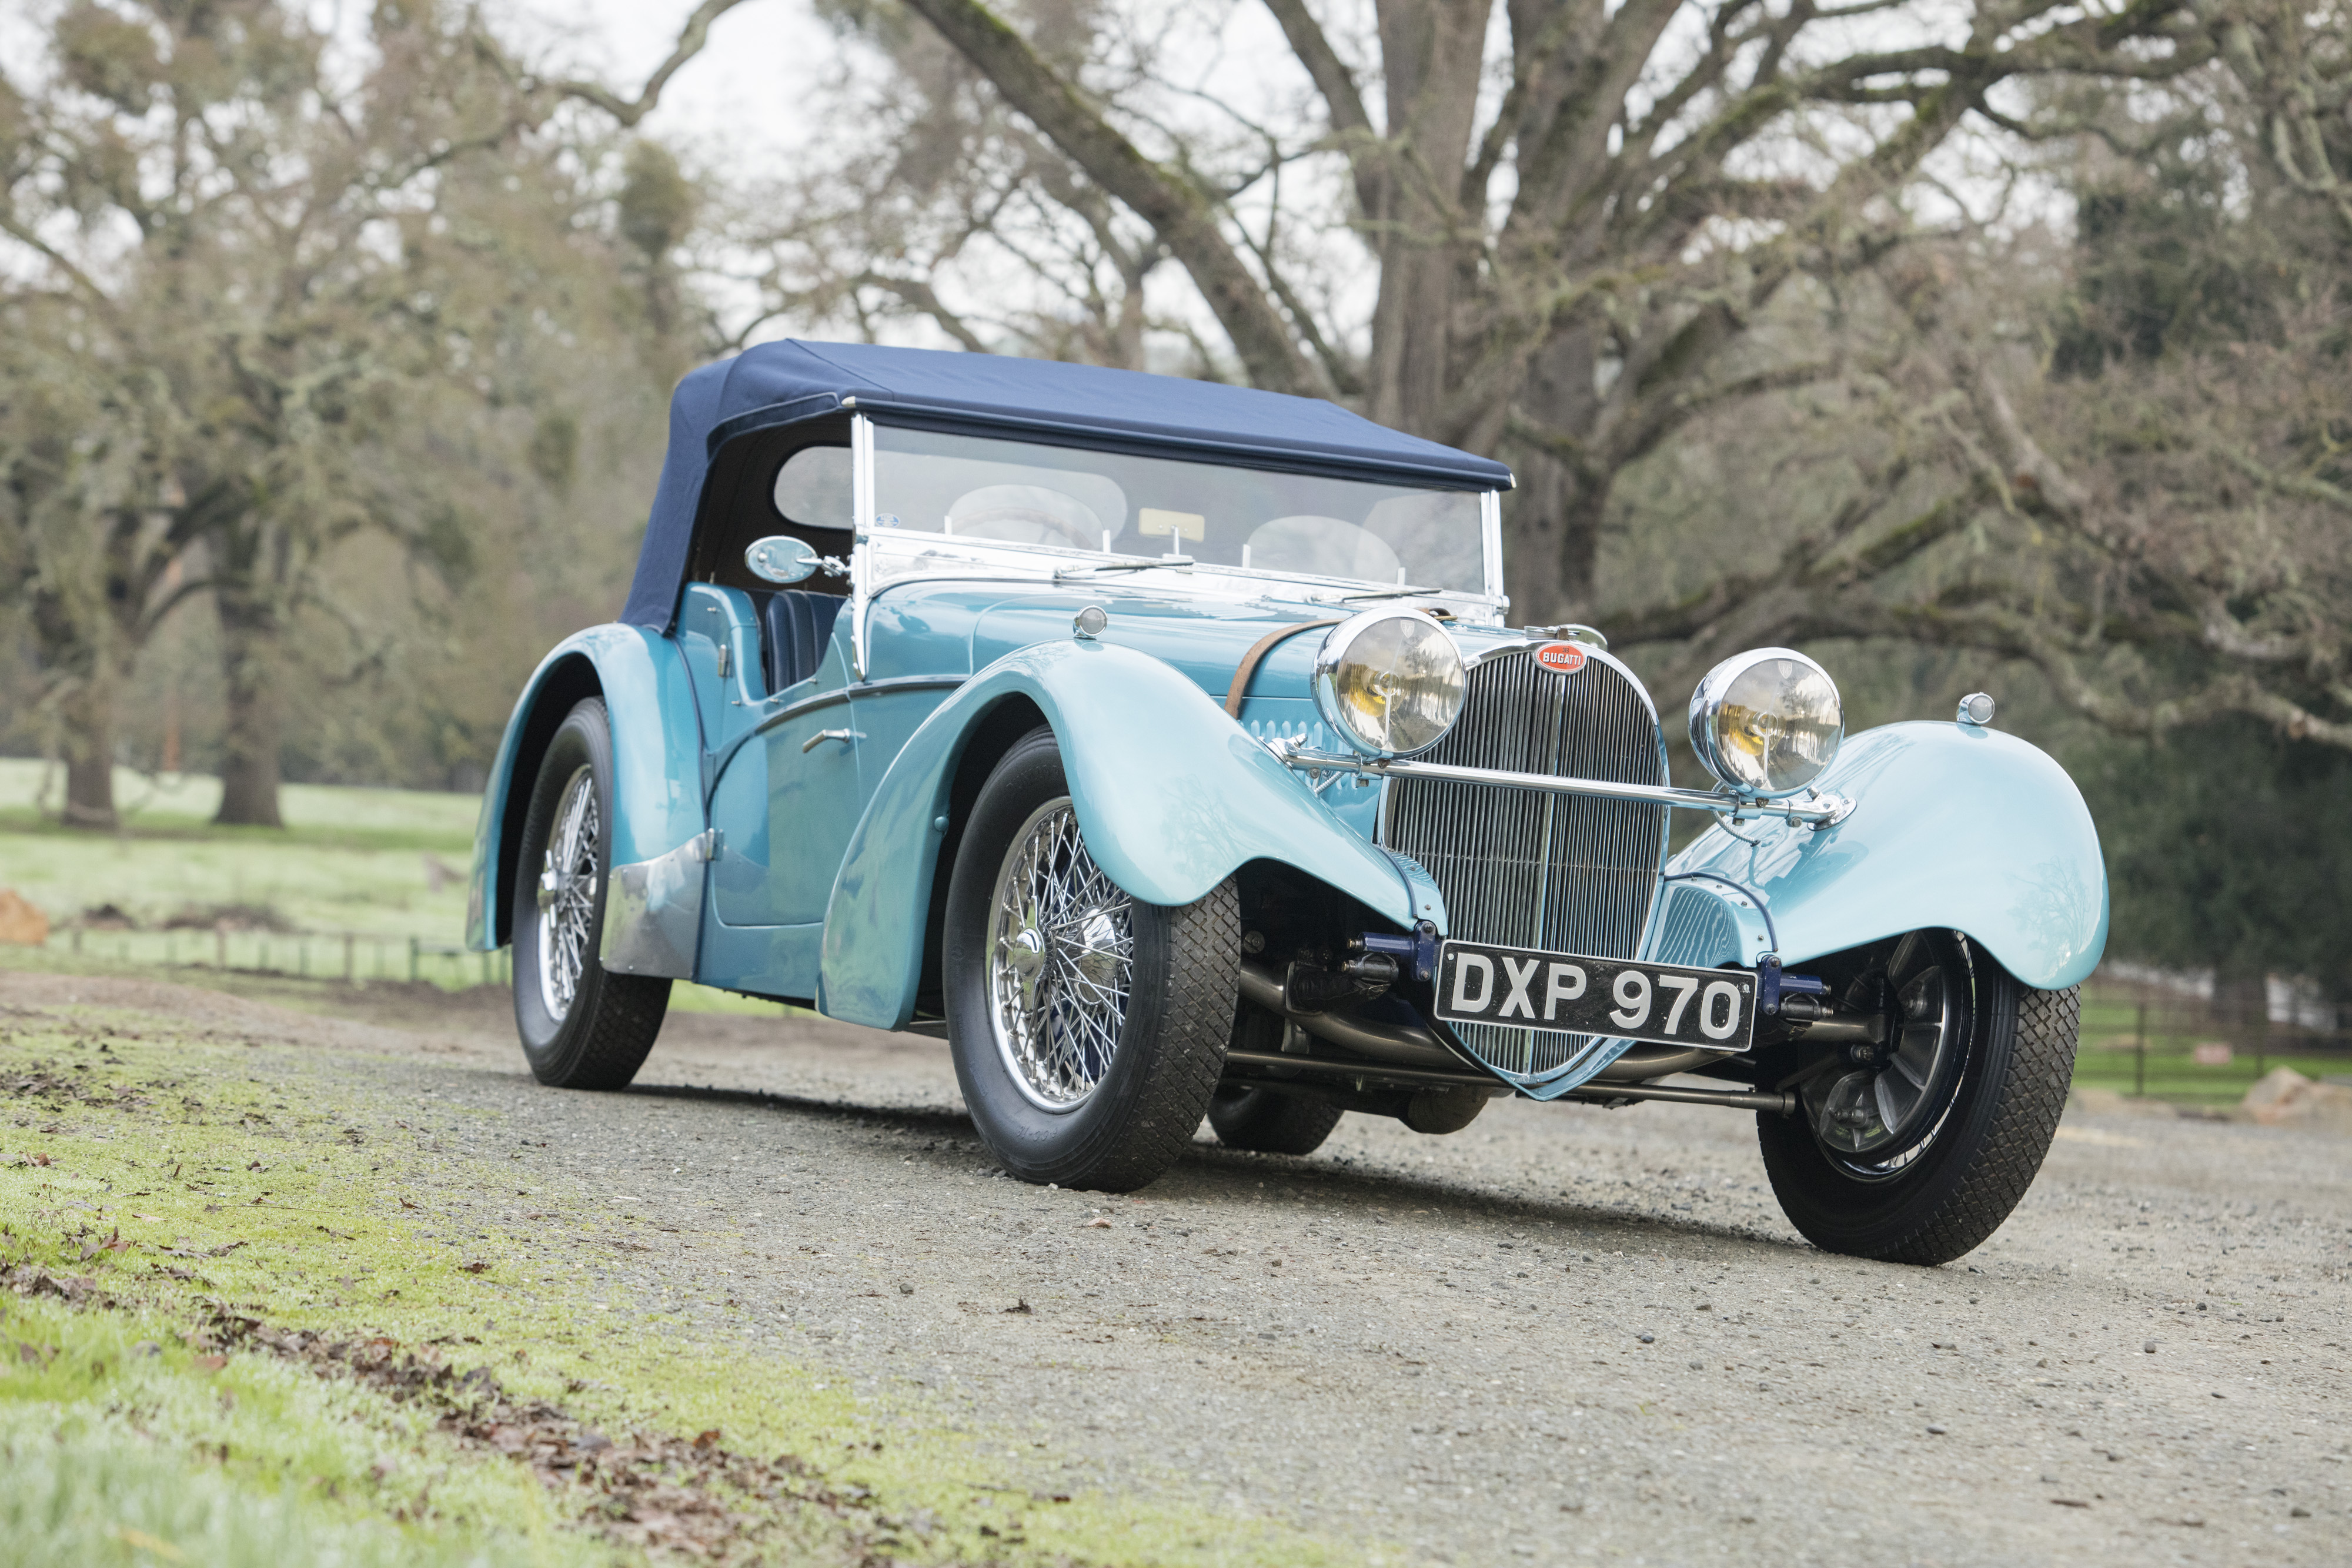 Preview on Bonhams Amelia Island auction 2016 - The Classic Car Trust